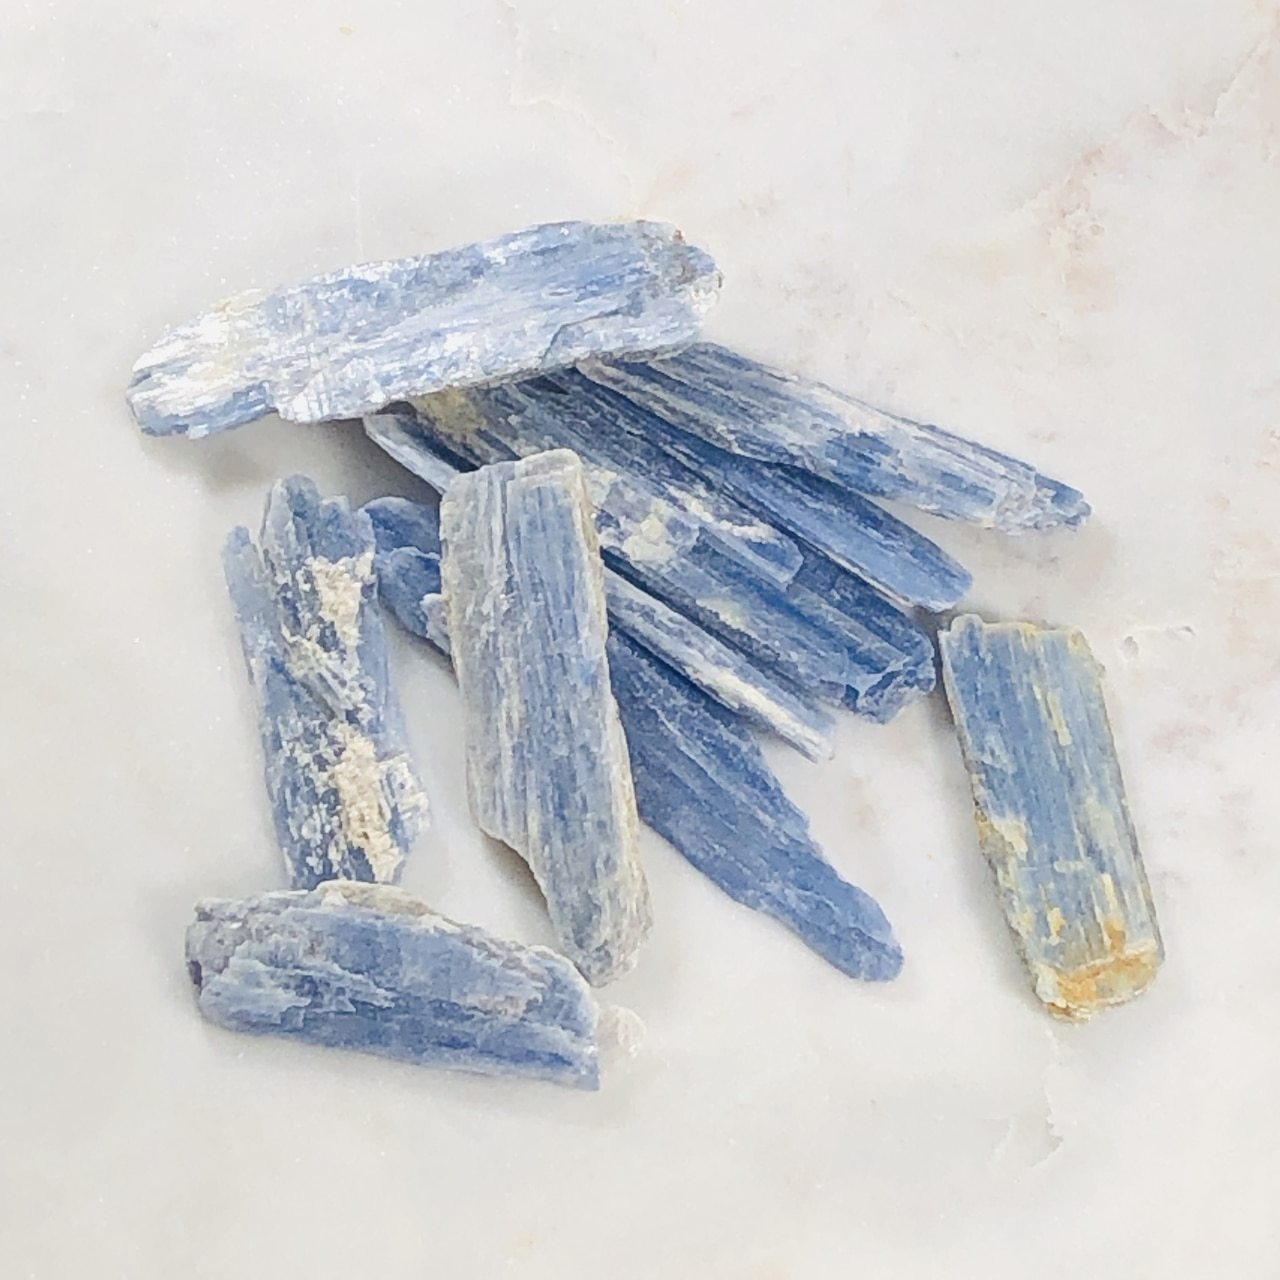 Blue Kyanite Healing Crystal Blades for Release of Fear